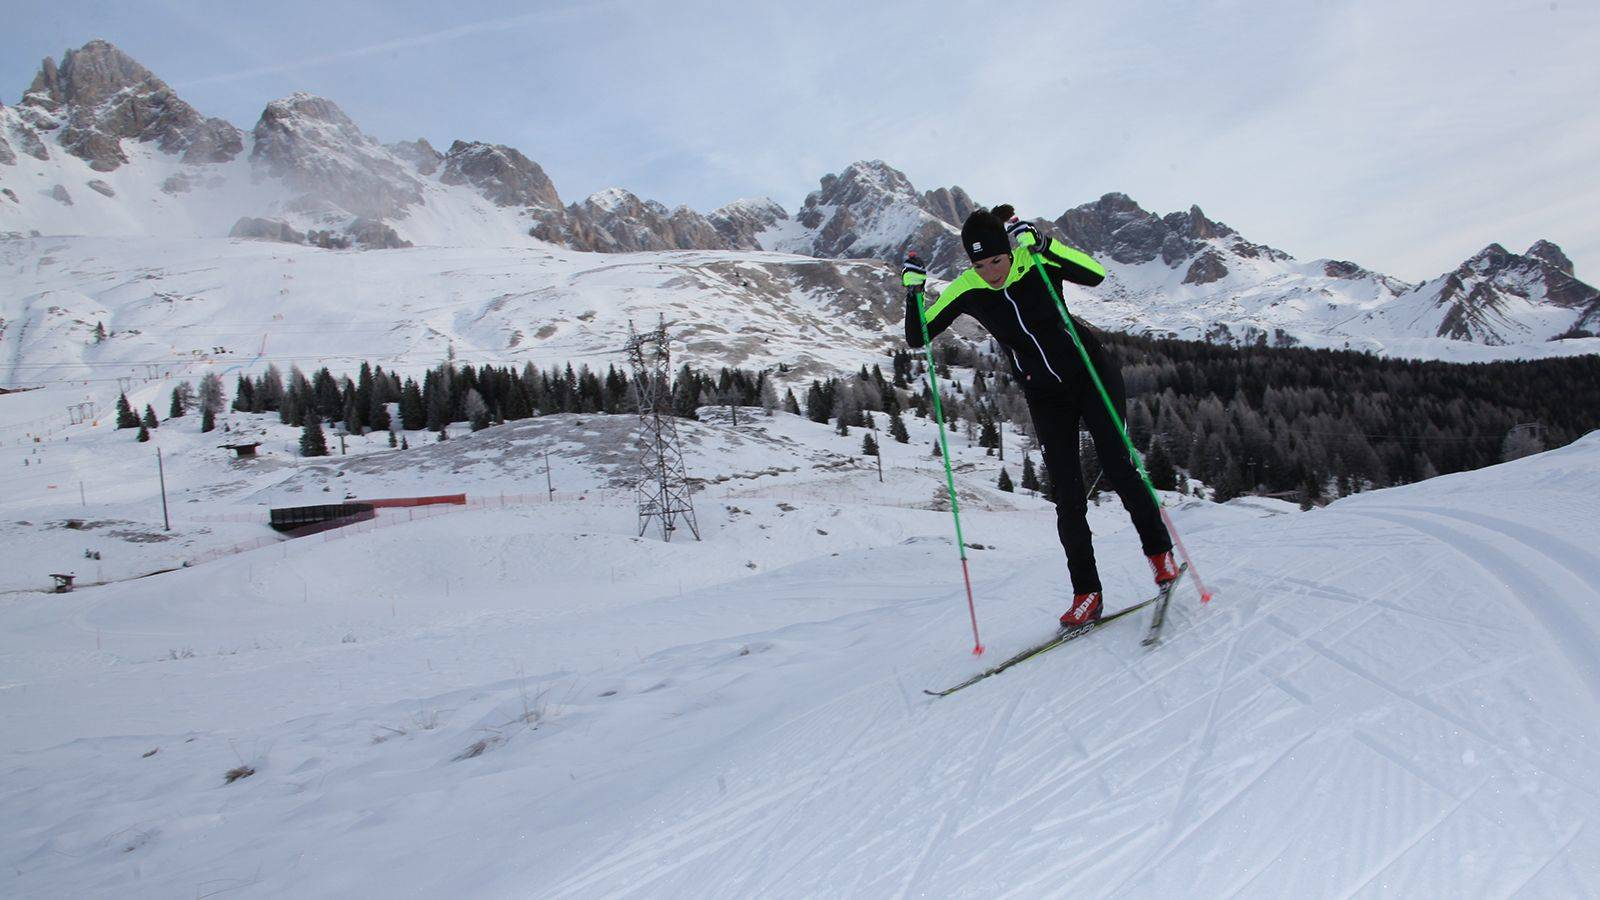 A skier practicing Nordic skiing in the circuit at Passo San Pellegrino